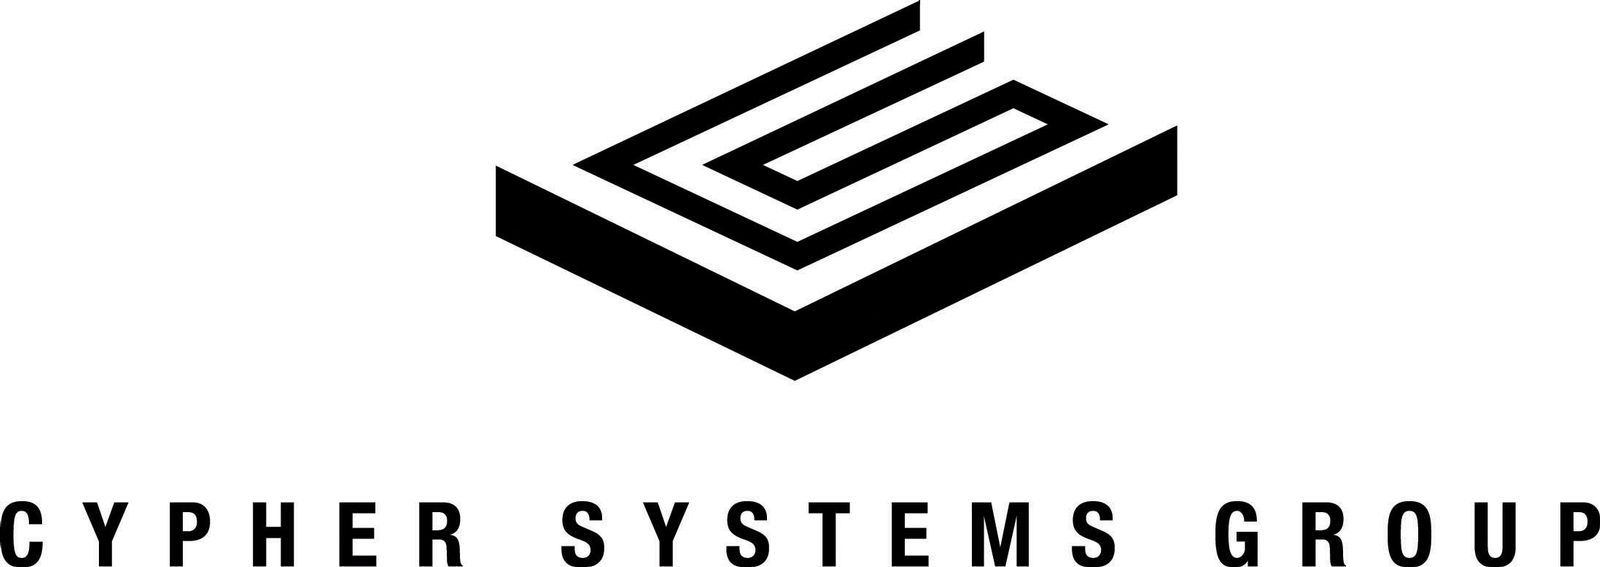 Cypher Systems Group Inc company